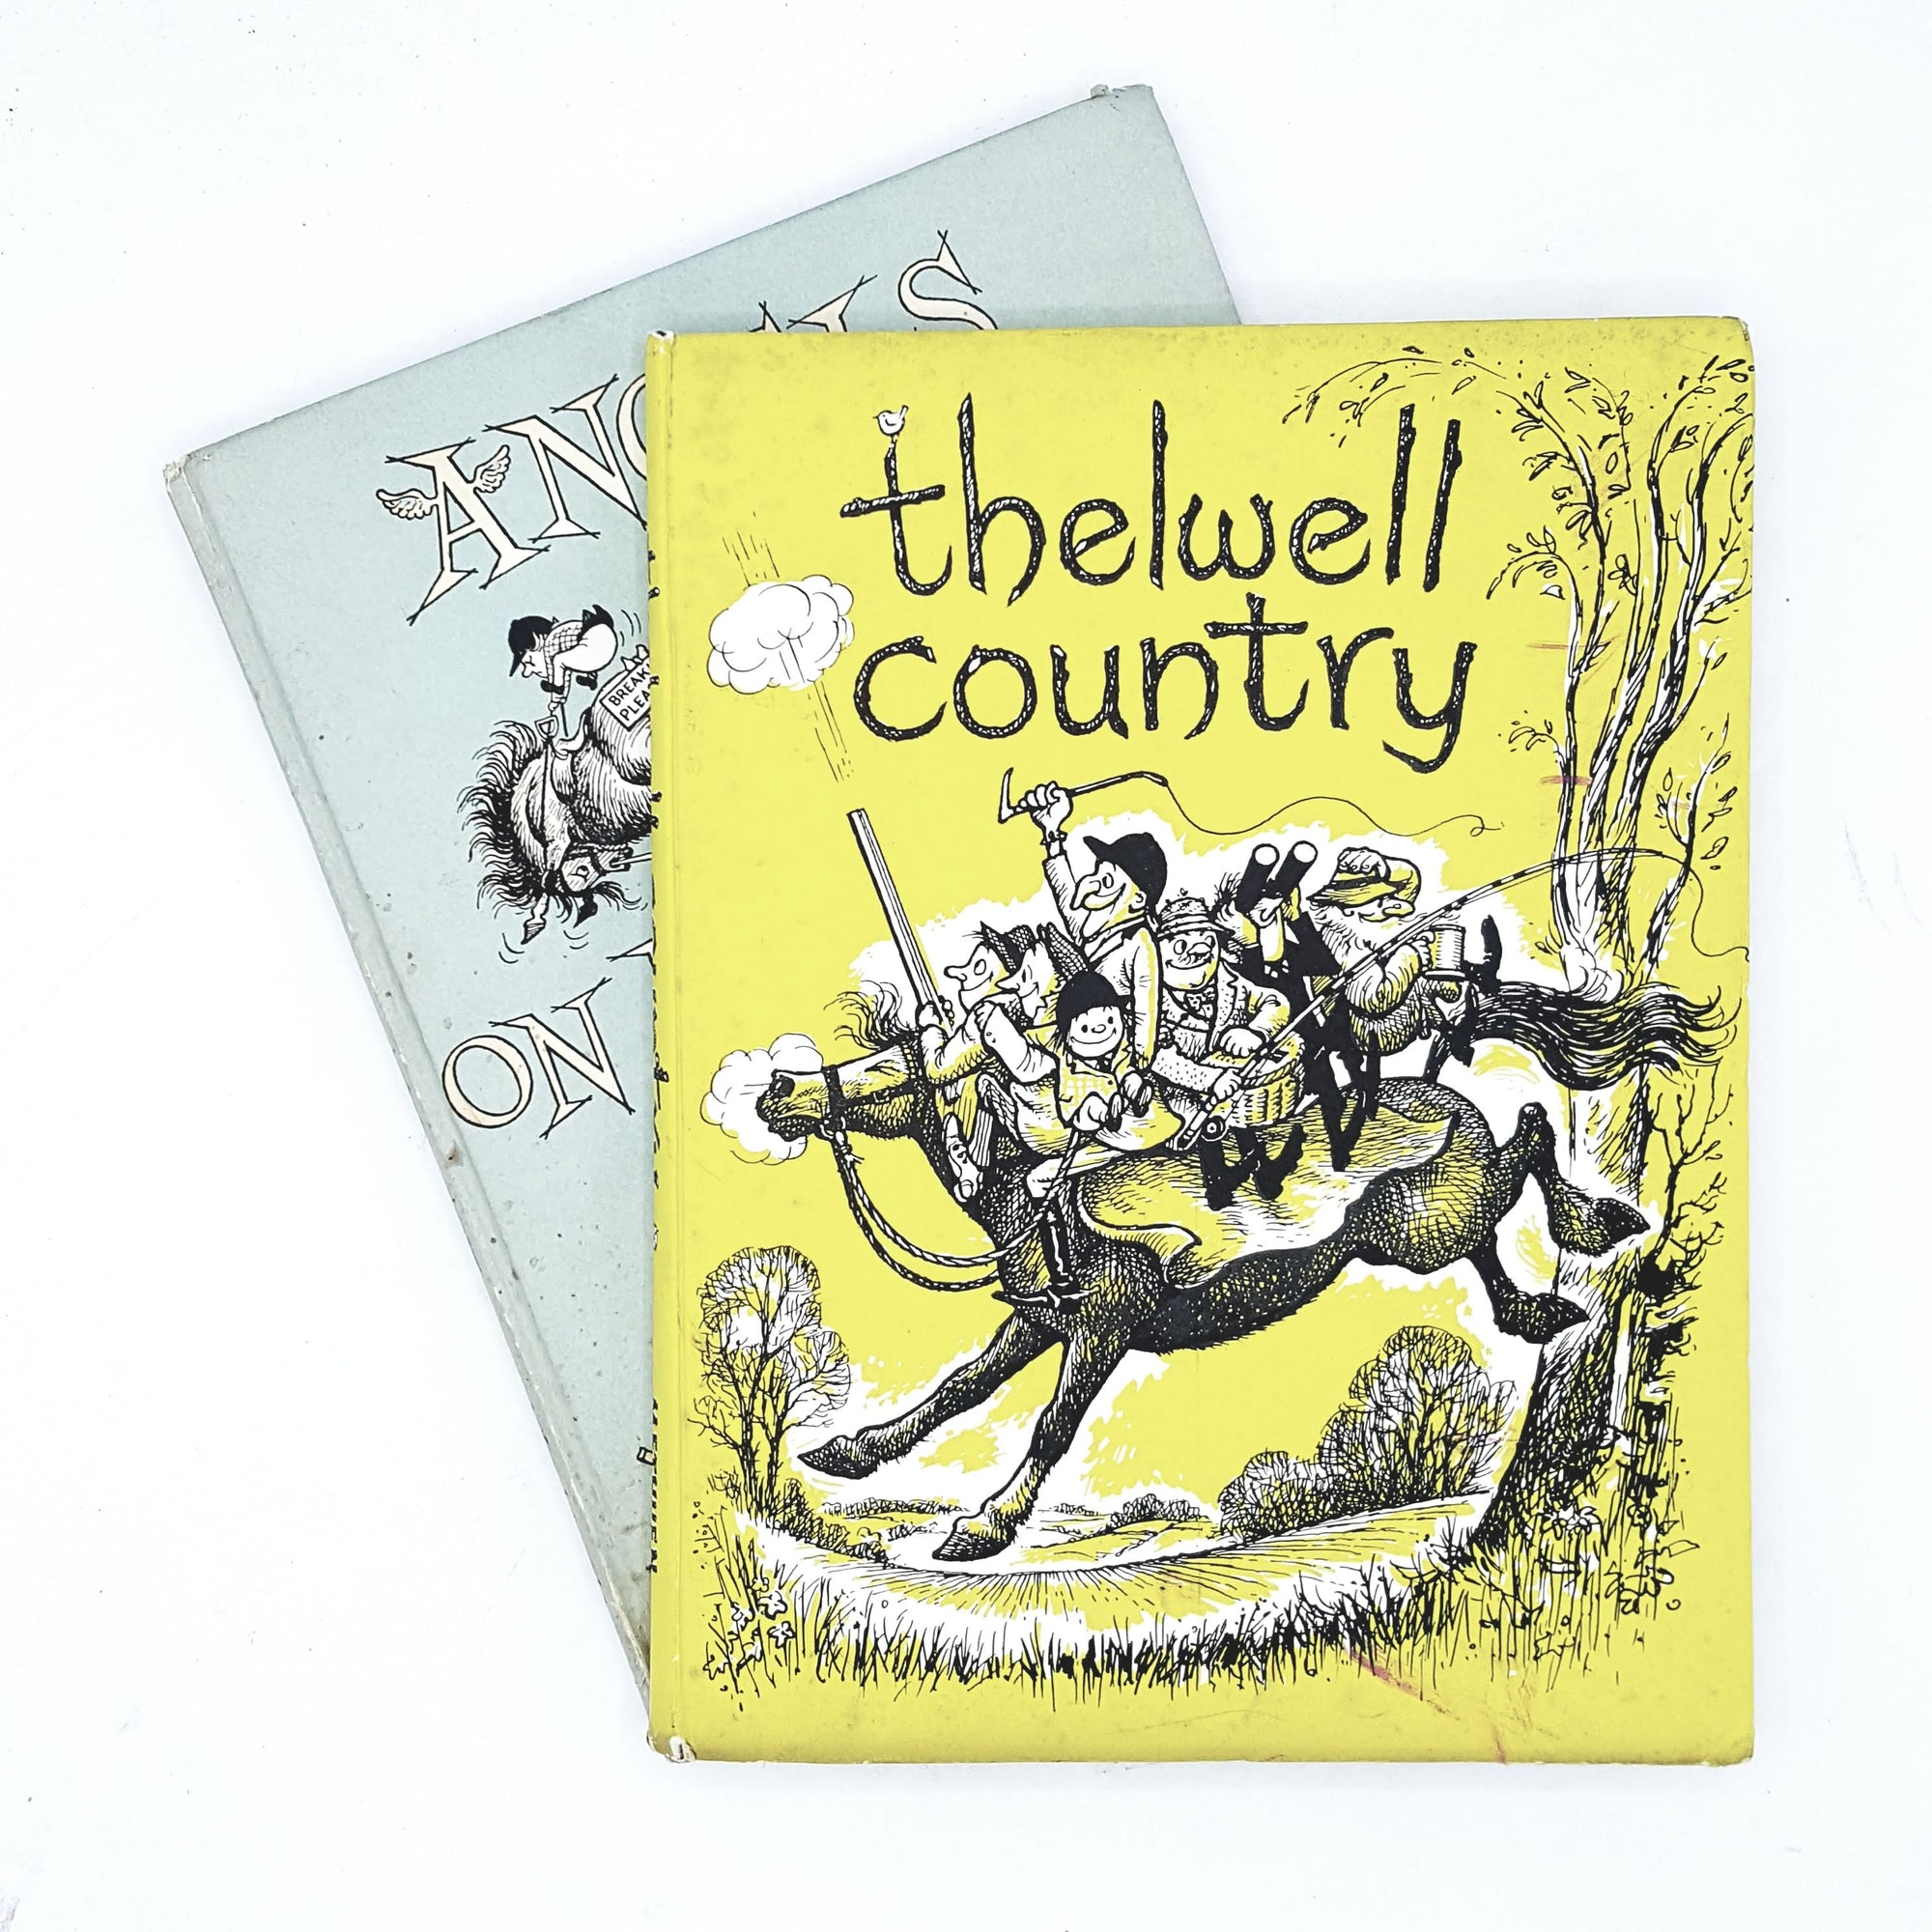 Thelwell Collection: Thelwell Country and Angels on Horseback 1959 - 1968